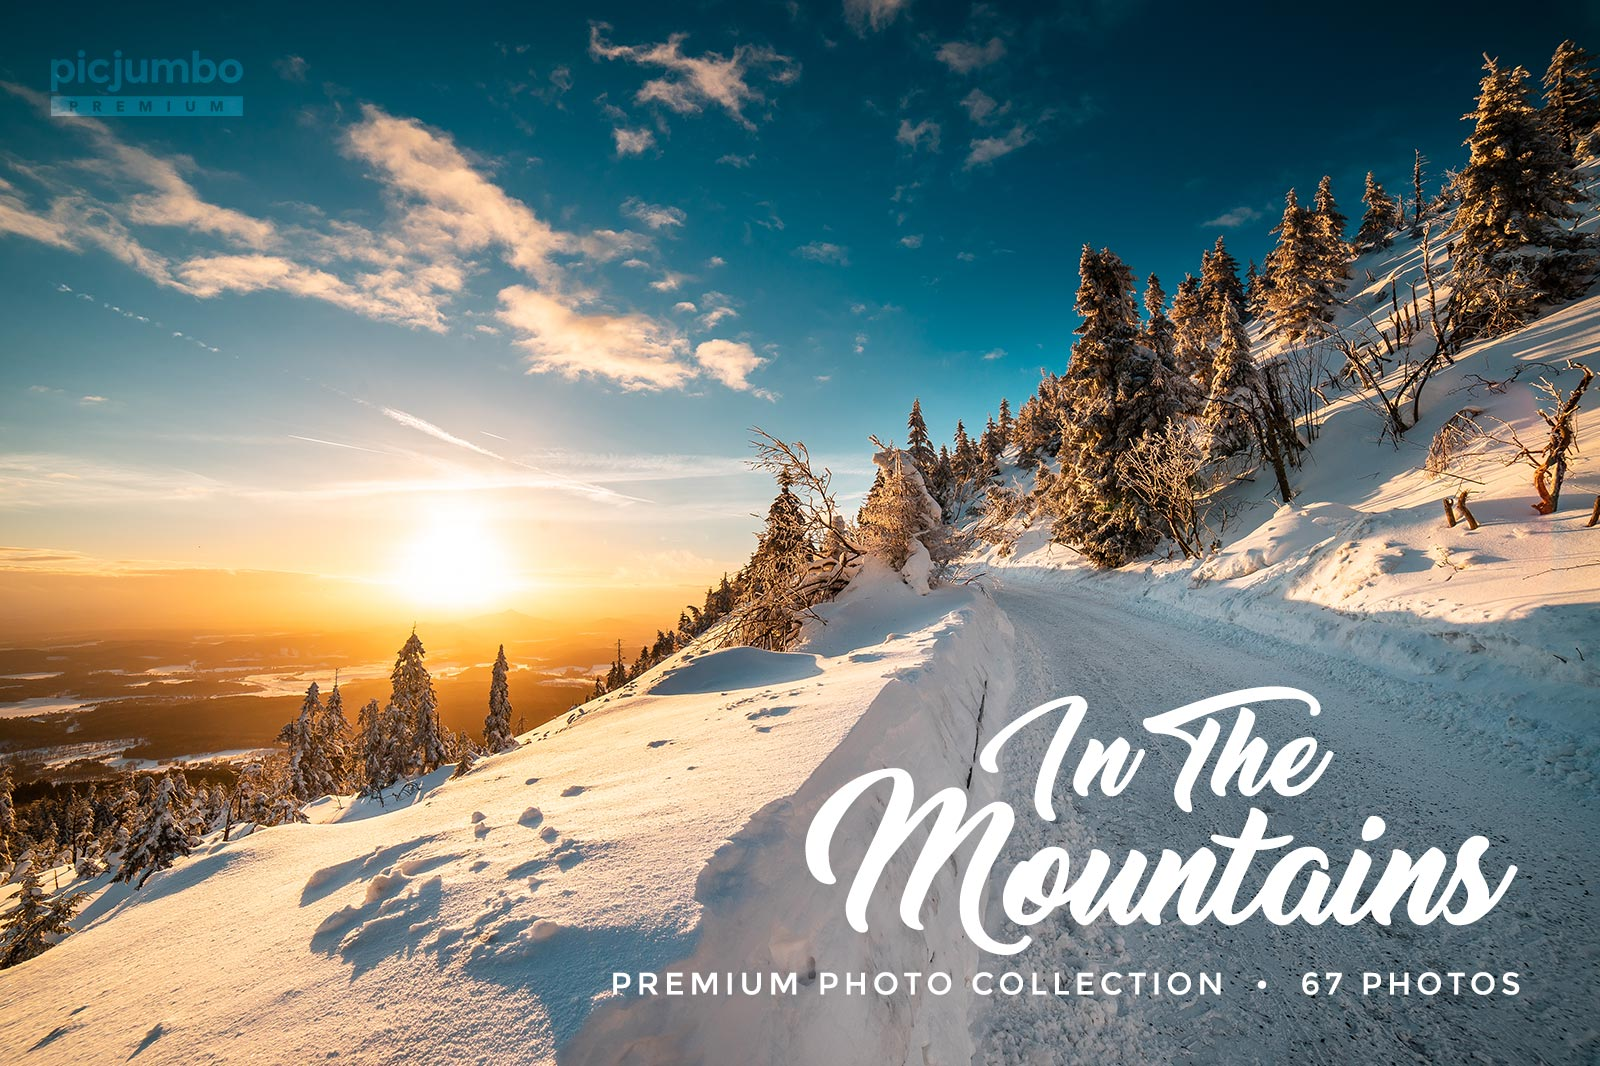 In The Mountains stock photo collection